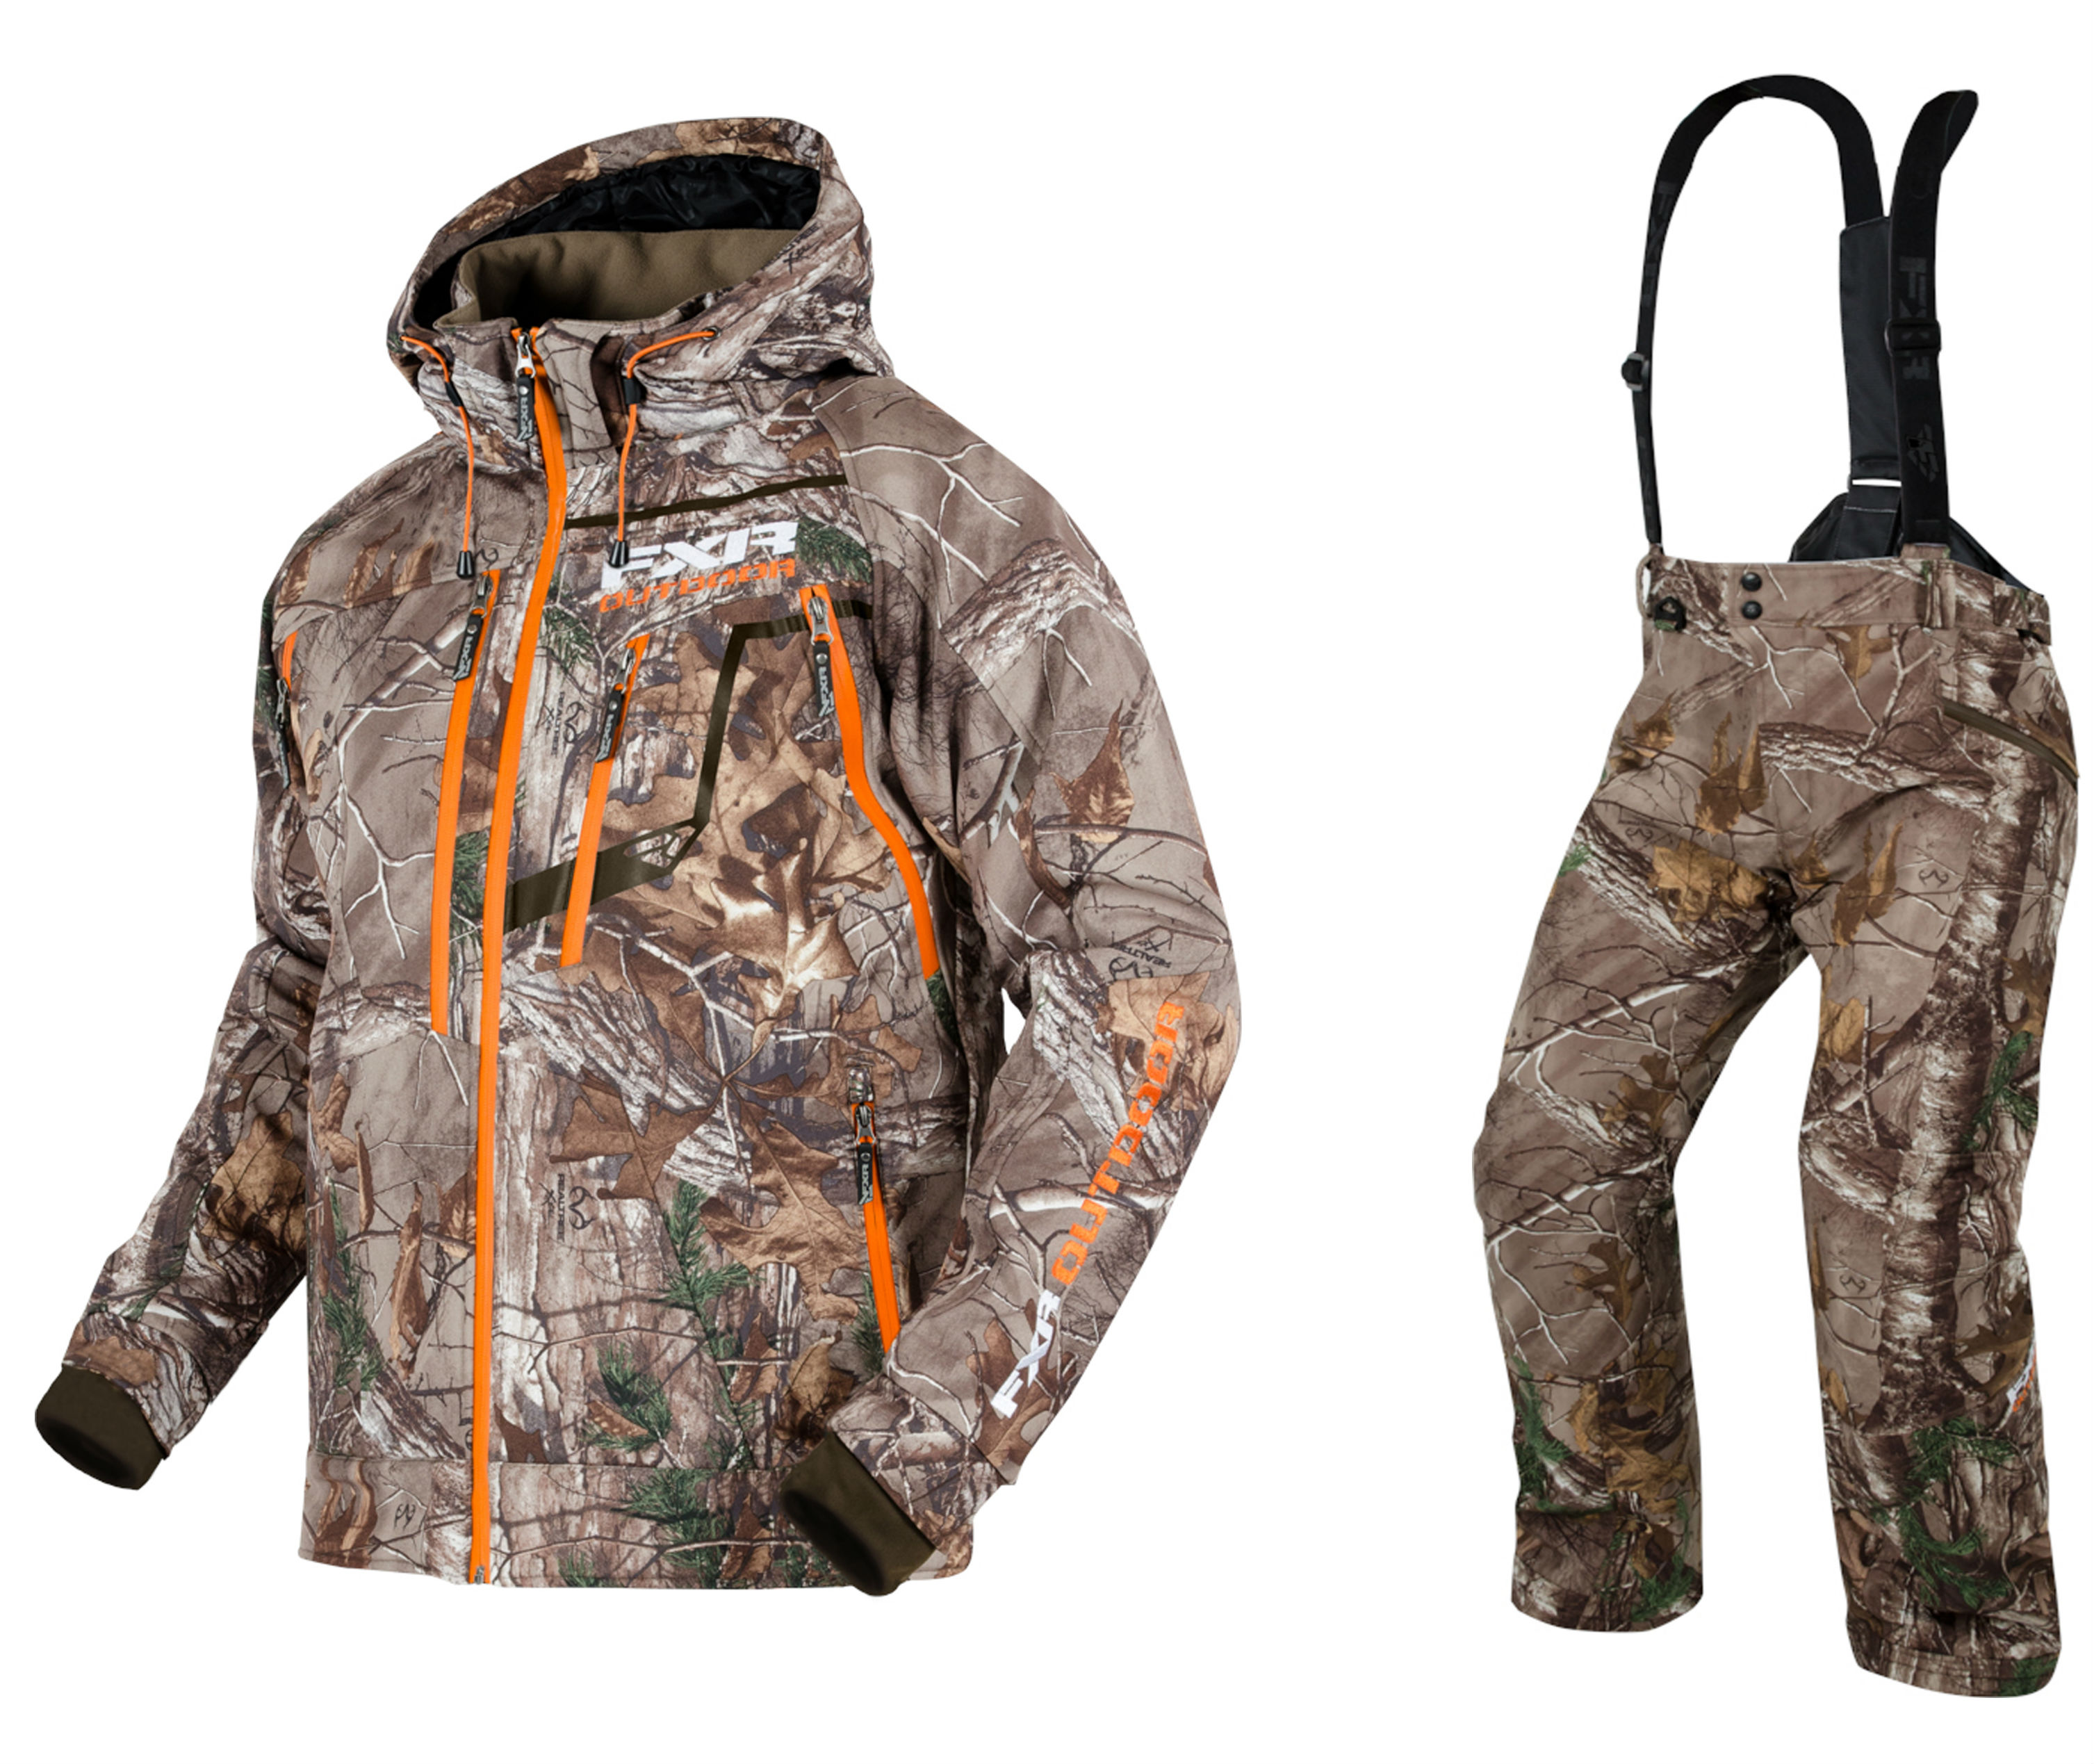 Fxr Realtree Gear For Hunters That Ride Dennis Kirk